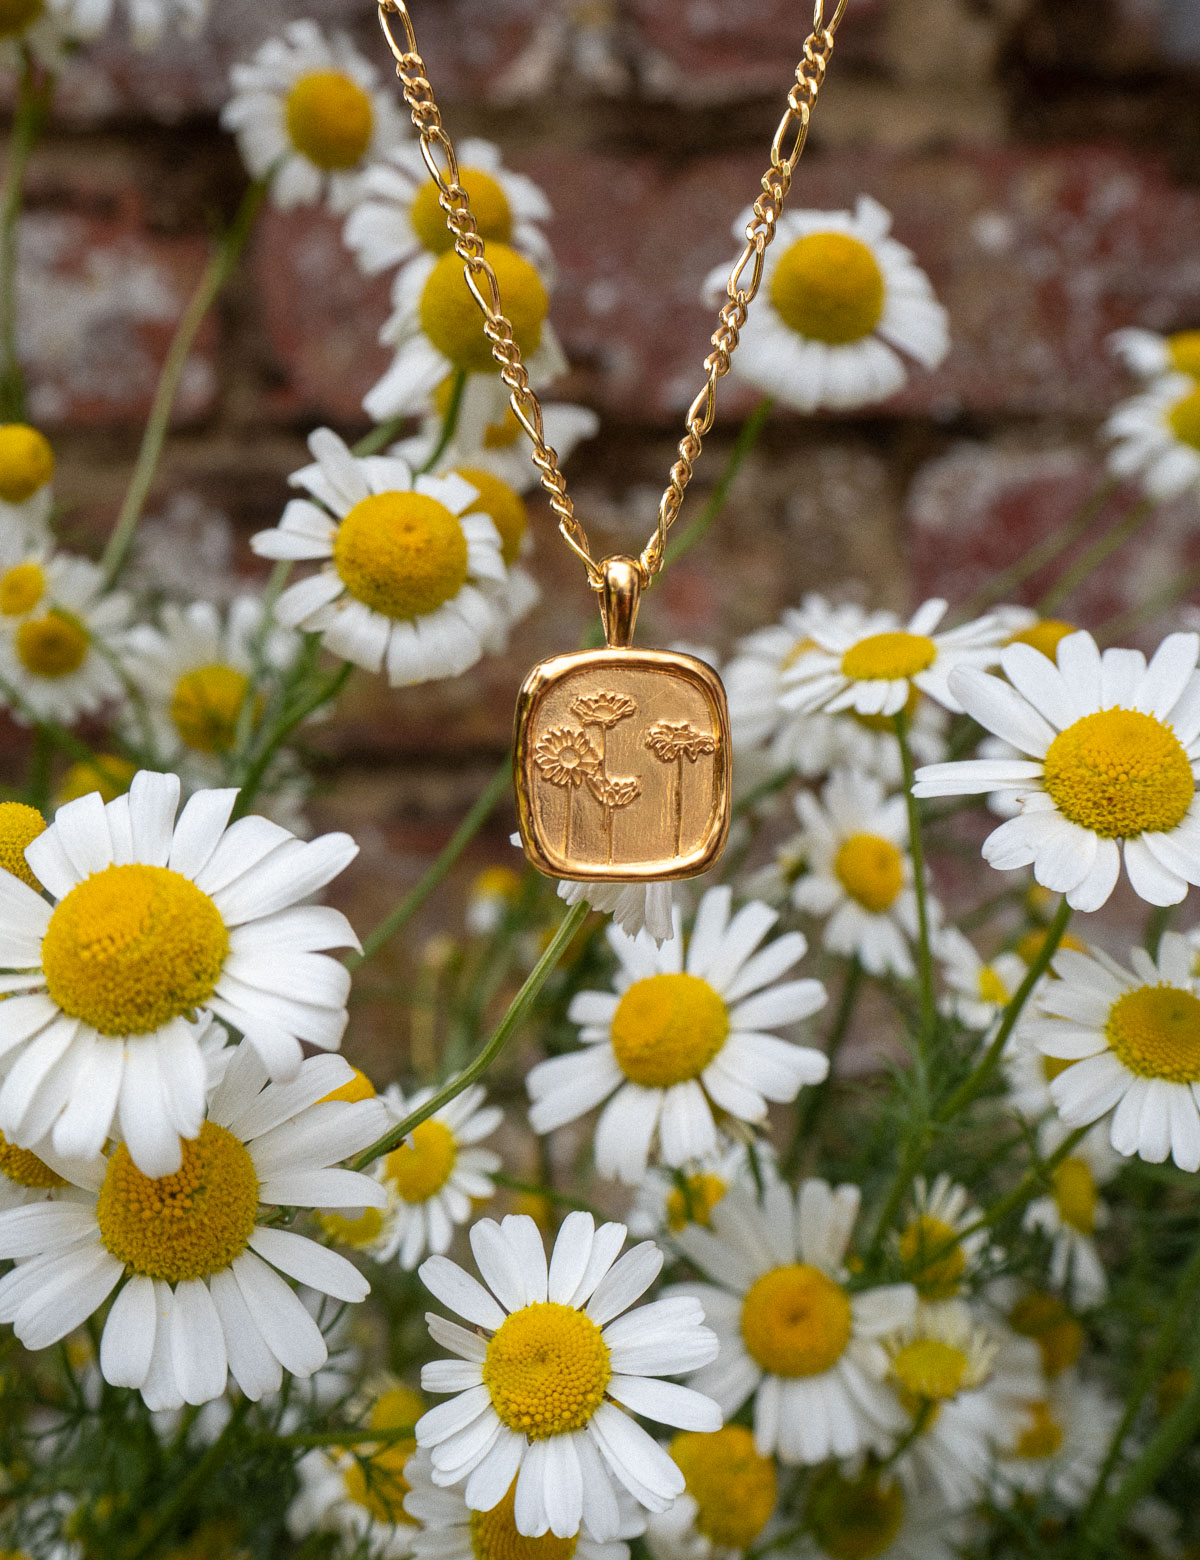 daisy jewellery, floral necklace, floral jewellery, necklace, gold necklace affordable jewellery, flower jewellery